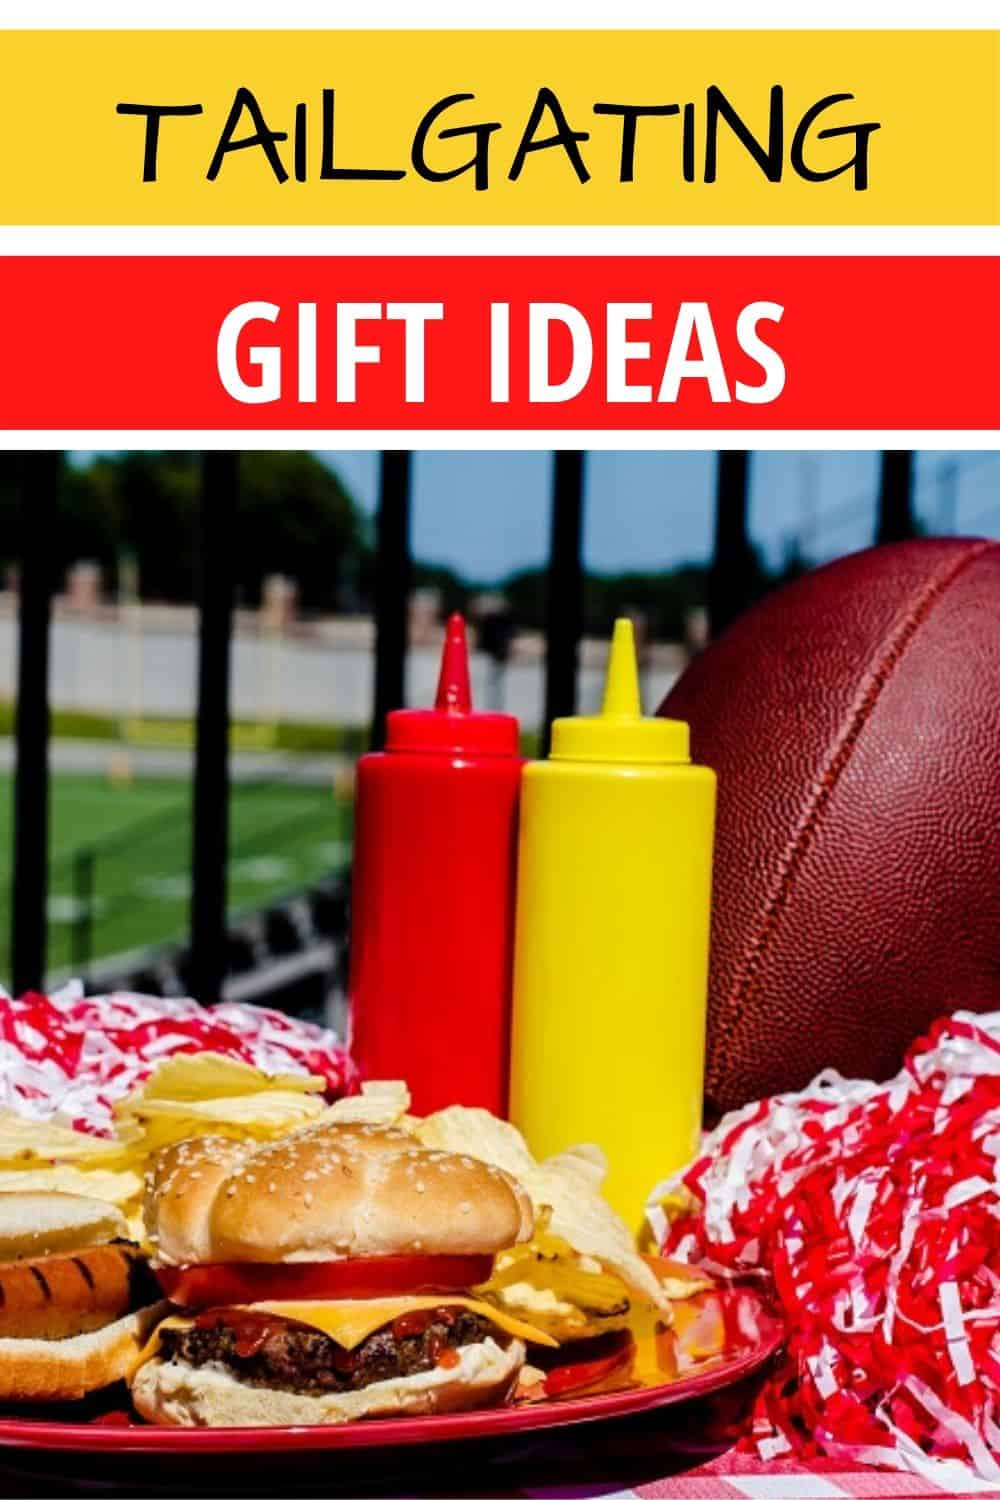 Tailgating Gift Ideas - Gifts for Tailgaters